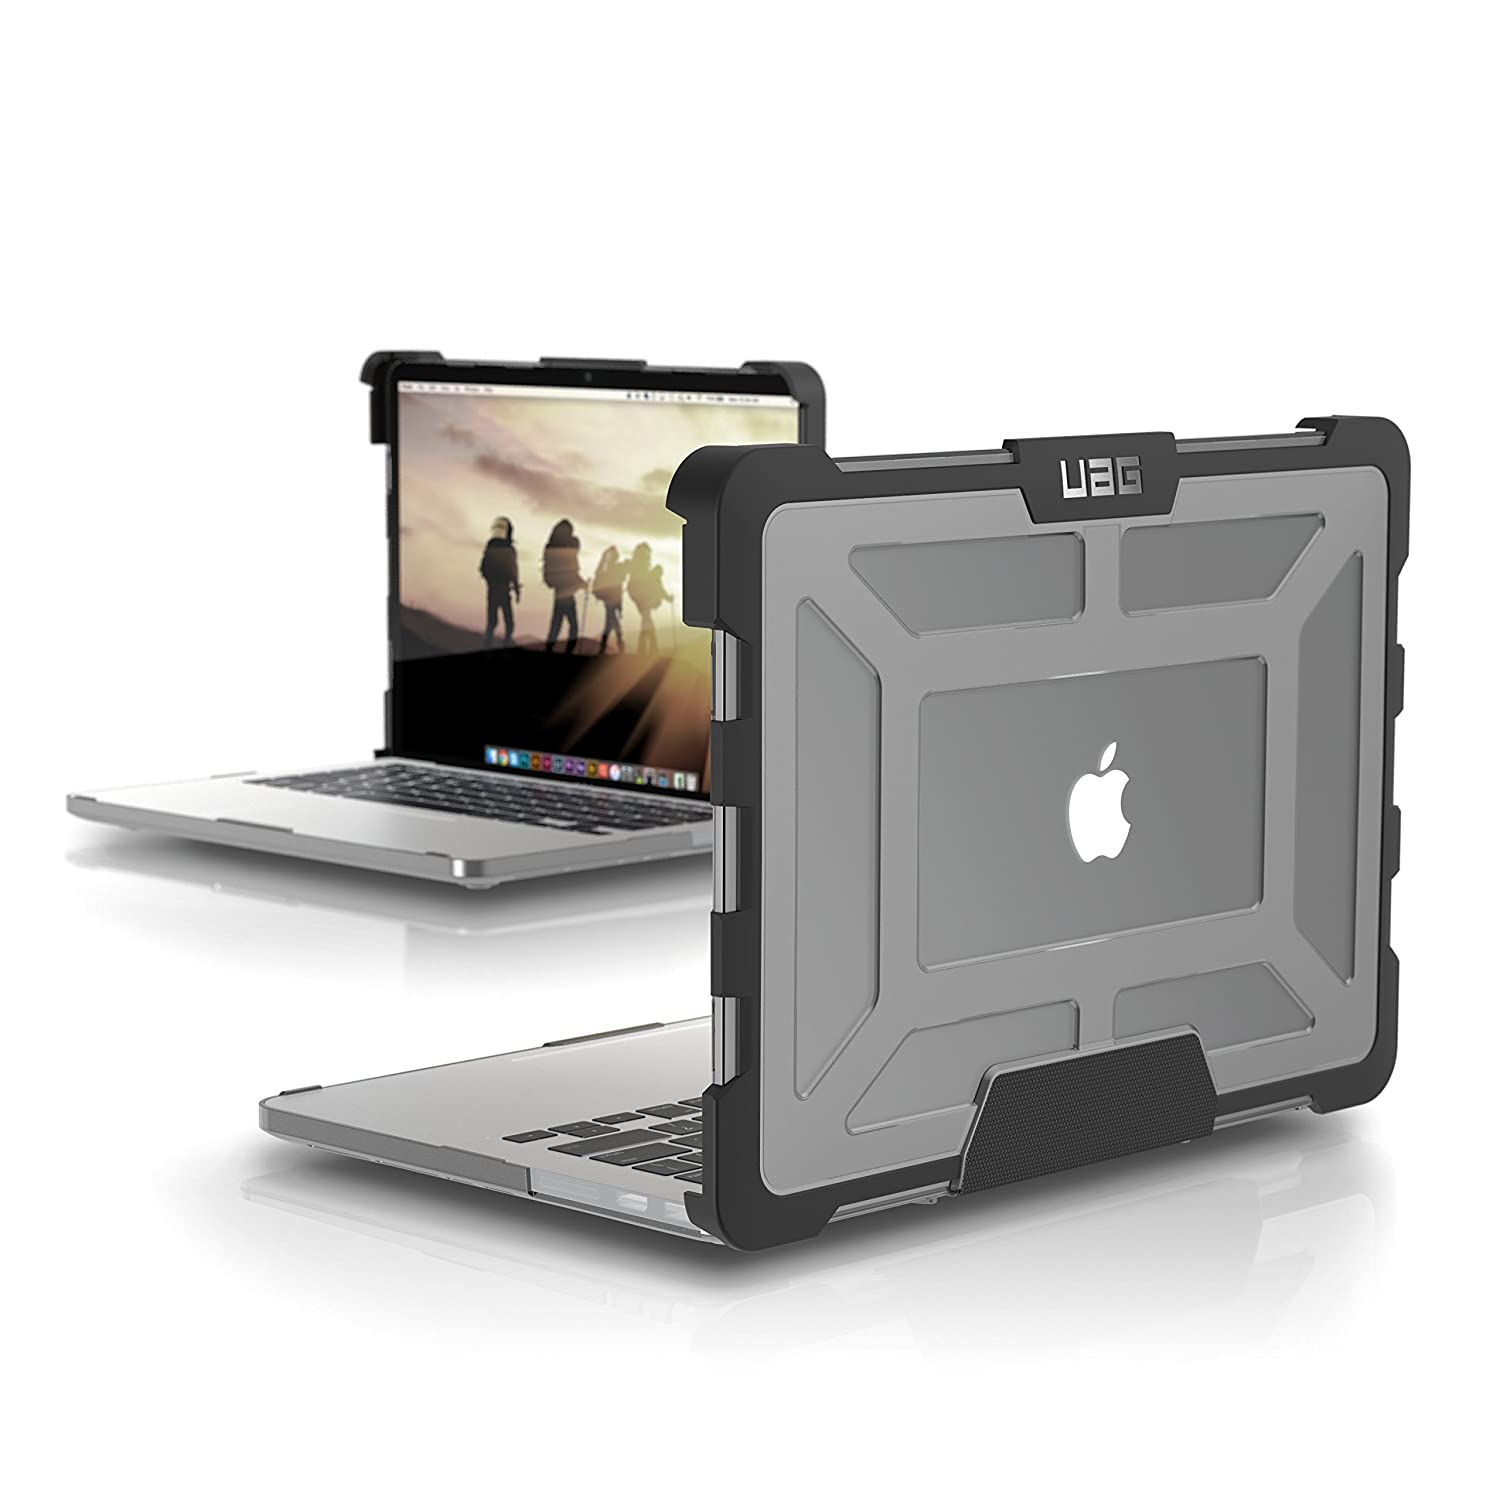 UAG MacBook Pro 13-inch with Retina Display (3rd Gen) Feather-Light Rugged [ASH] Military Drop Tested Laptop Case